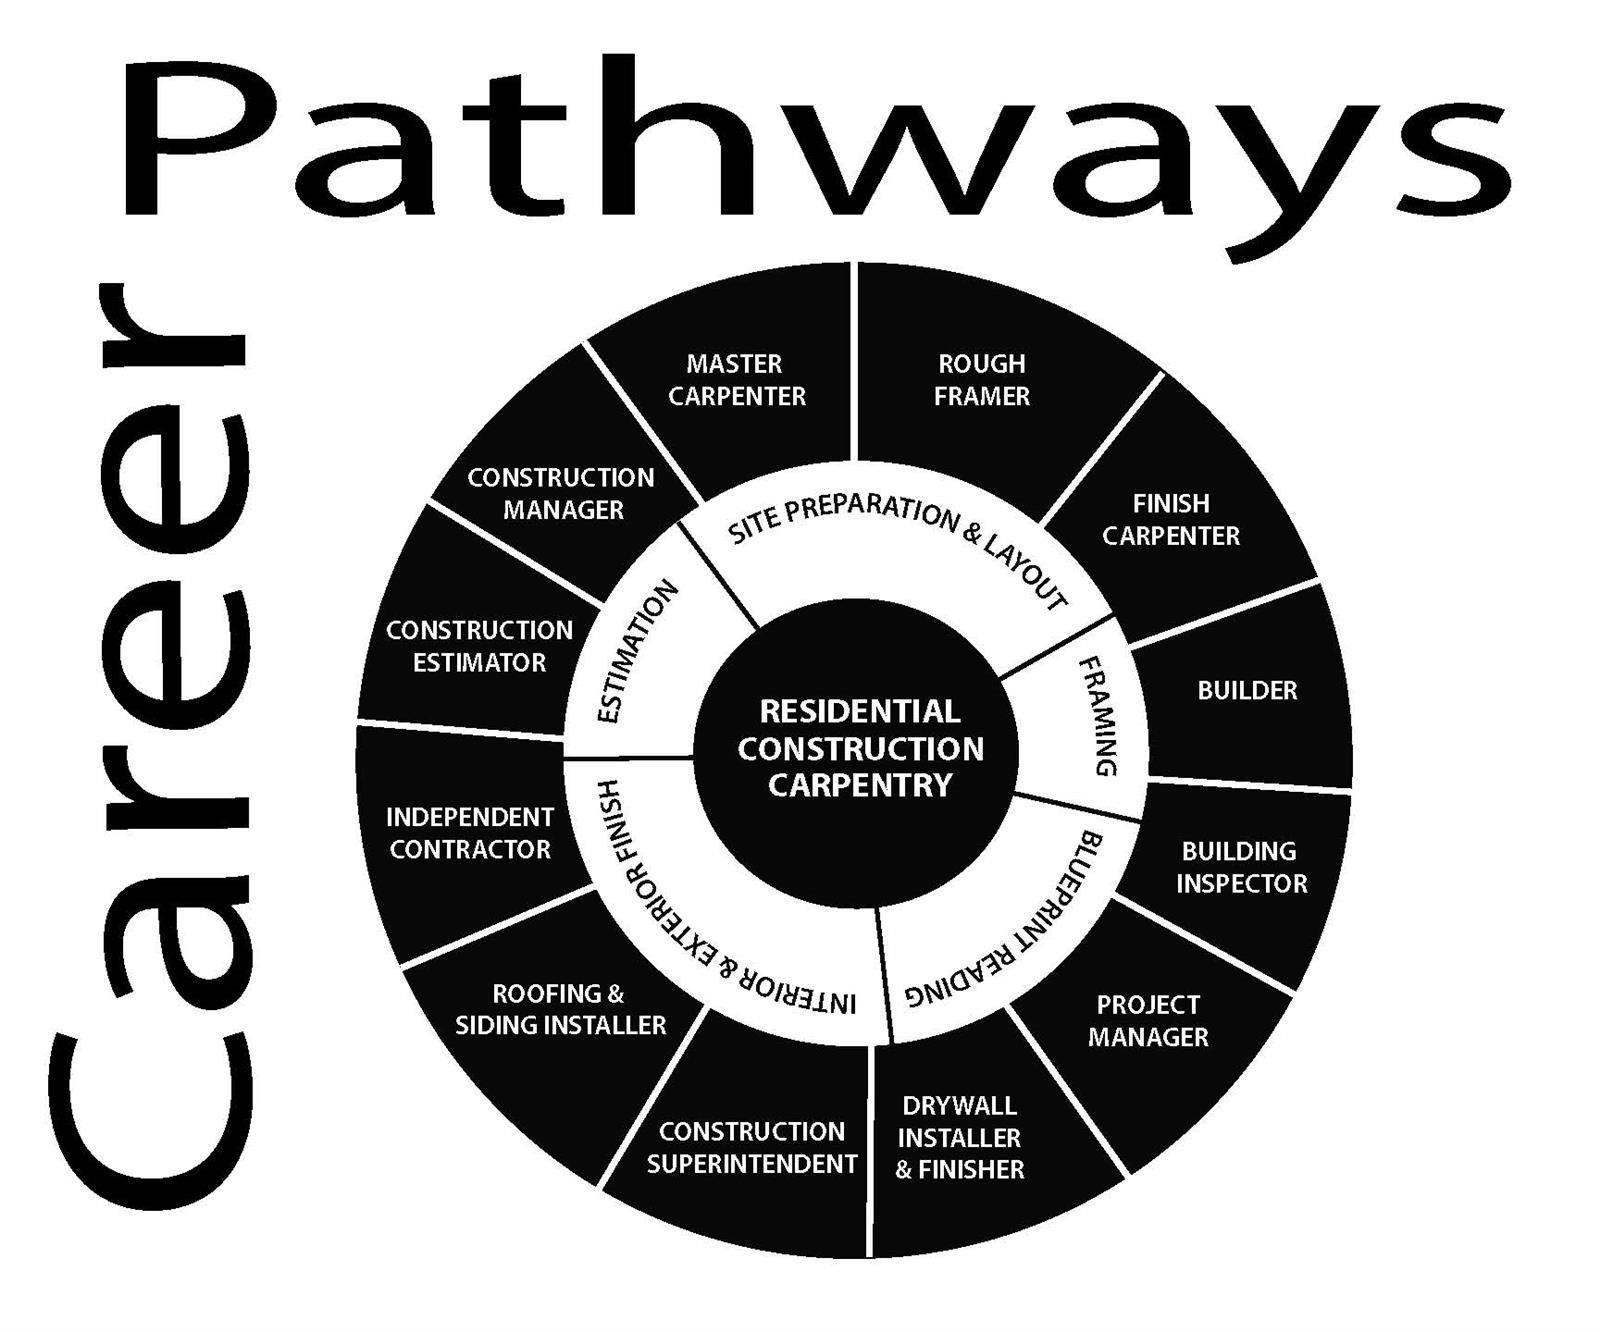 Career Pathway Wheel for Residential Construction Carpentry